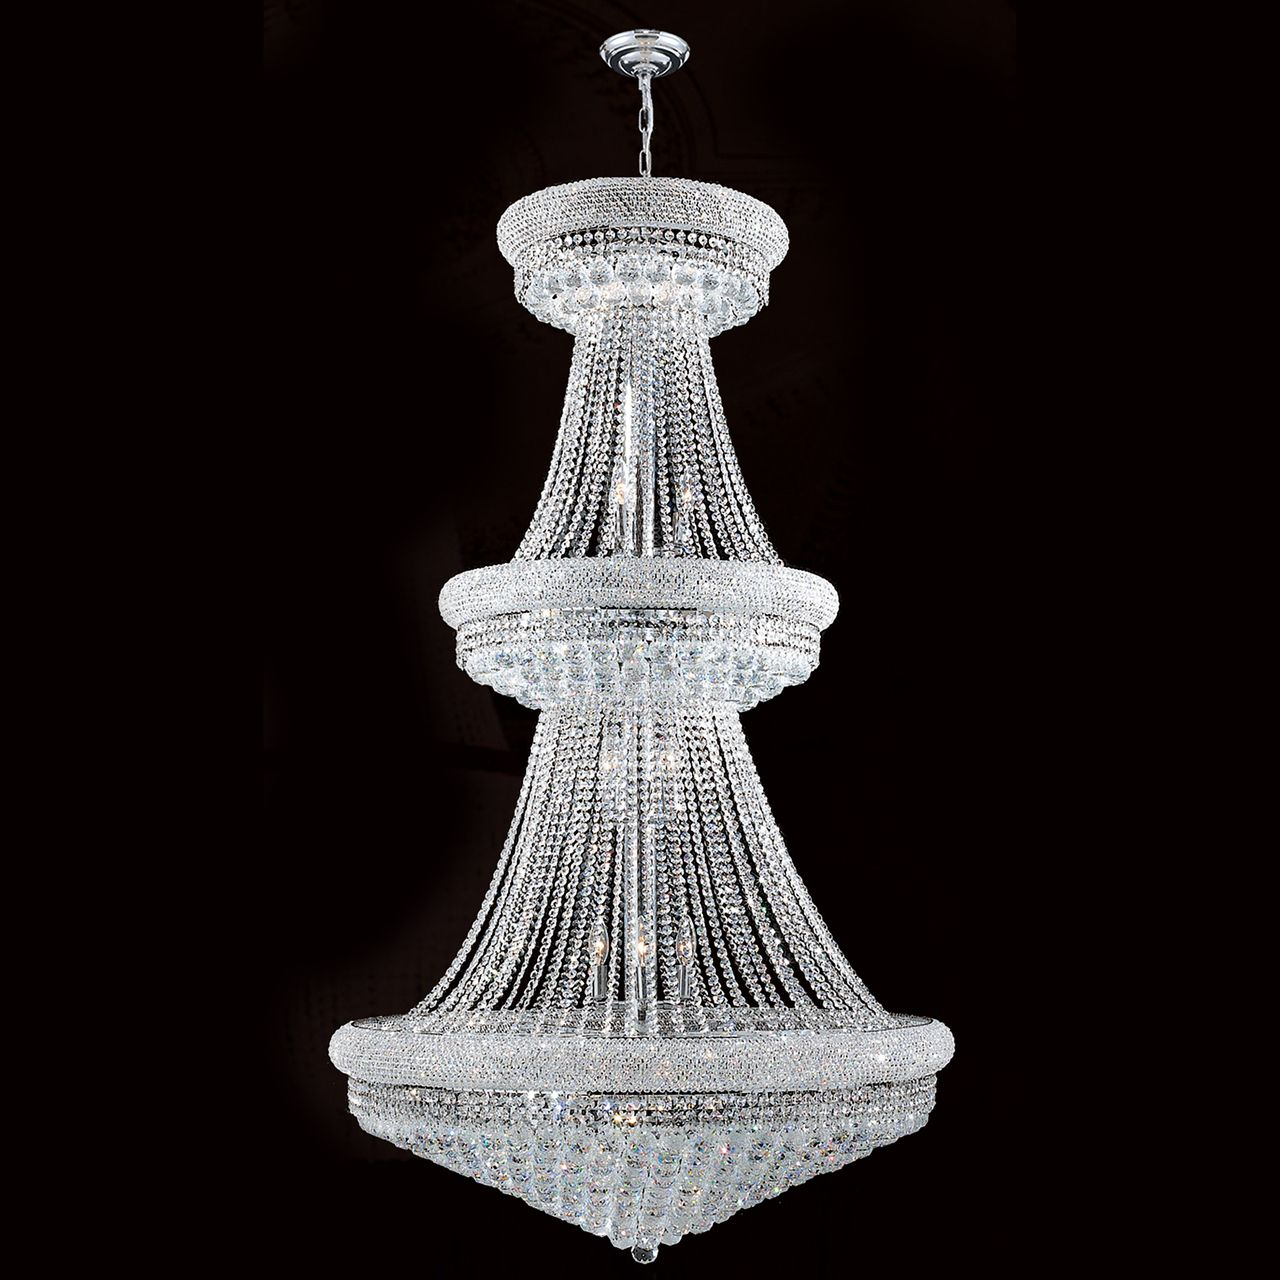 Check out the seamless Flush mount chandelier lights we have to – Flush Mount Chandelier Lighting